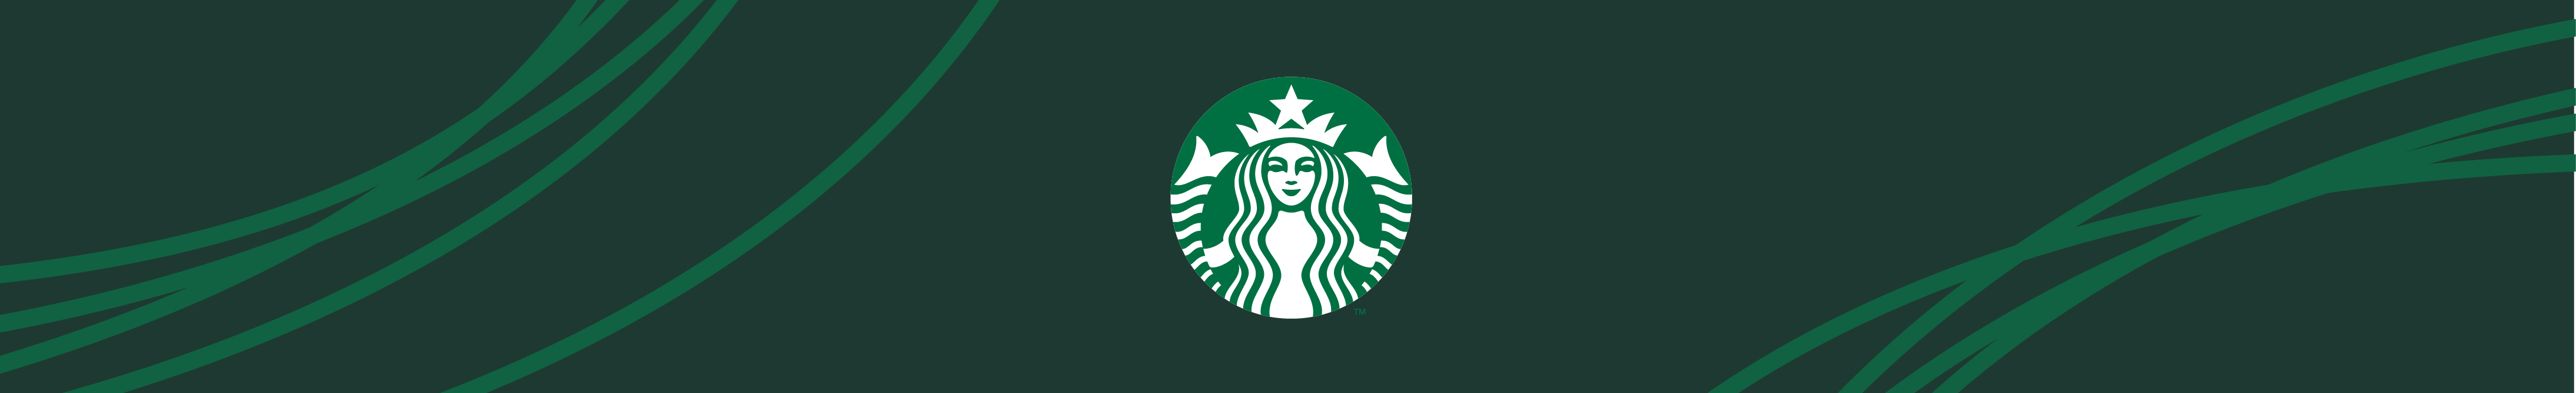 Starbucks Careers